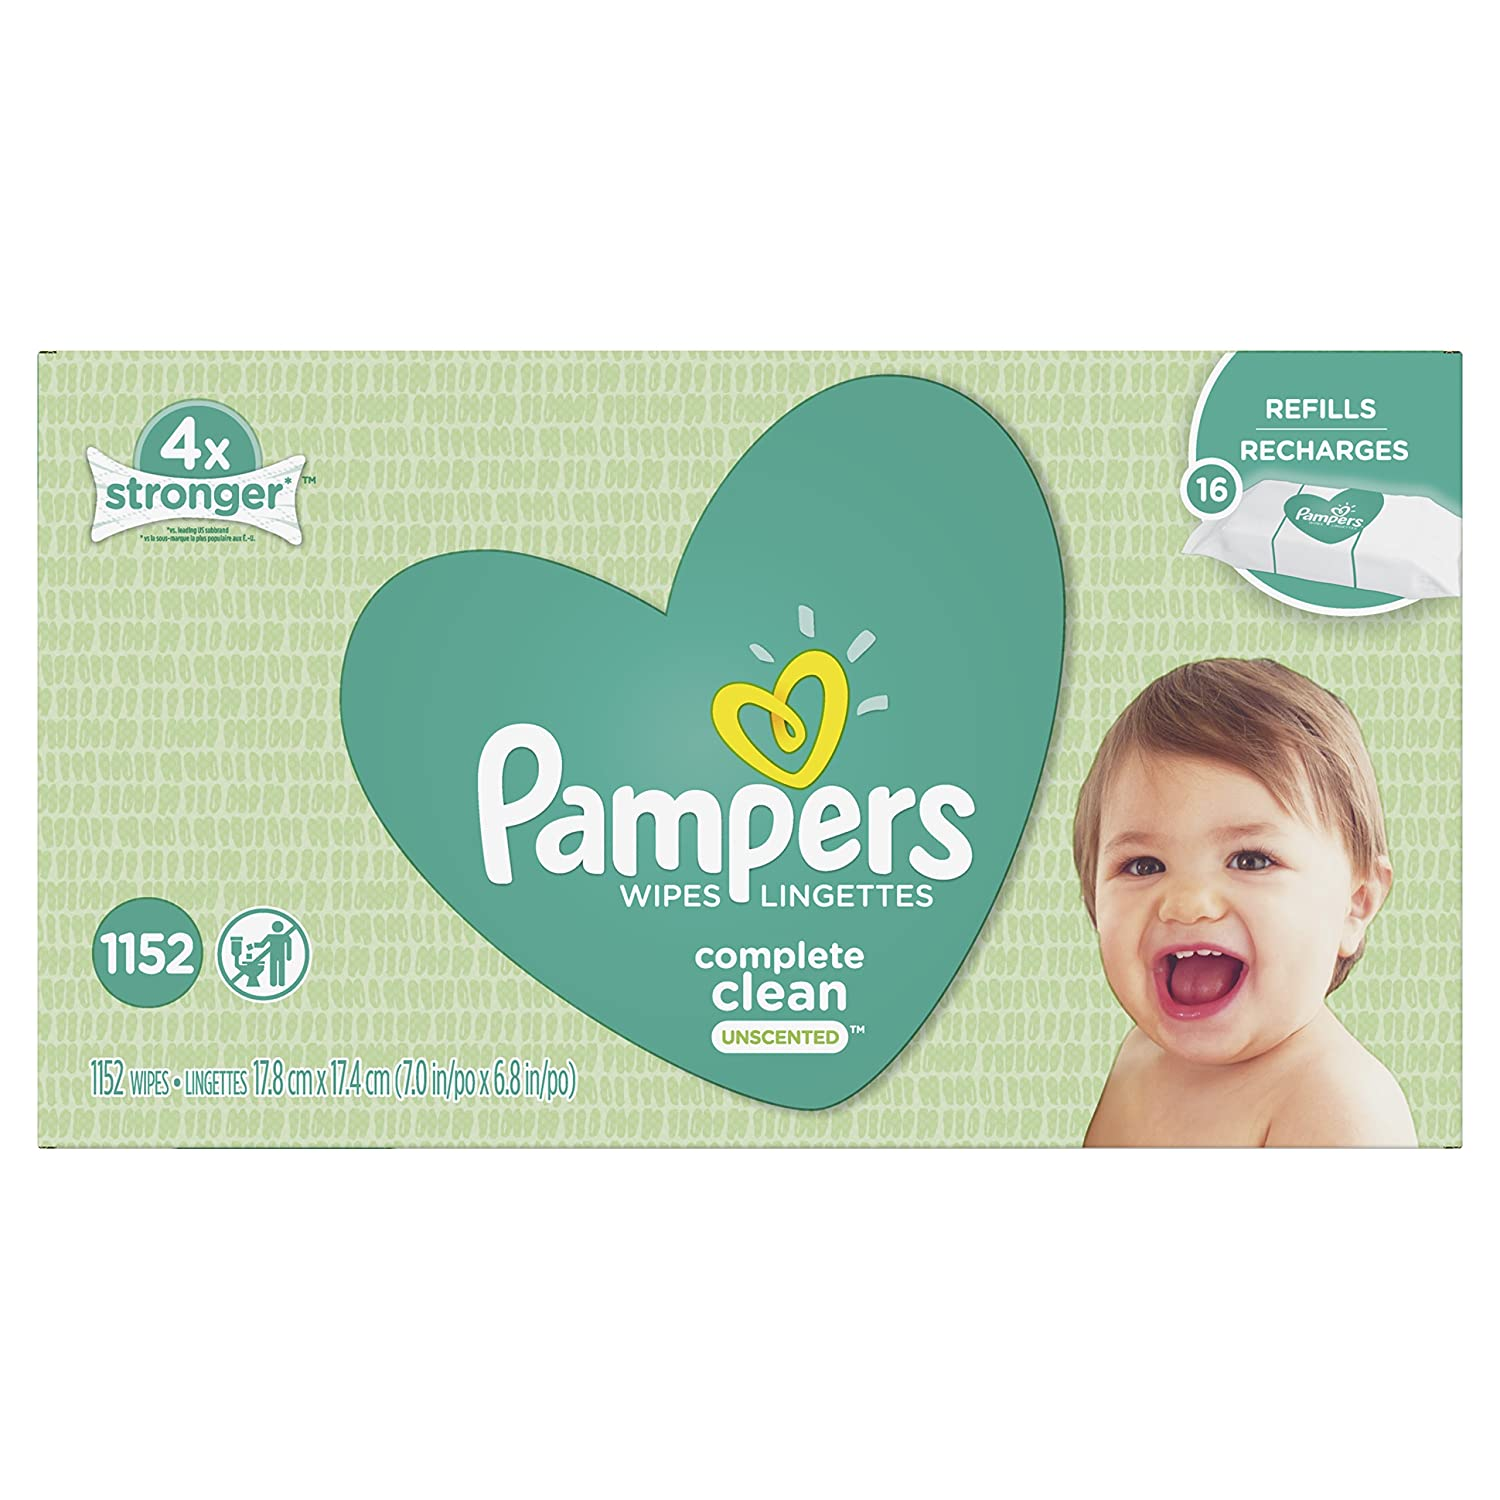 Pampers Baby Wipes Complete Clean UNSCENTED 16X Refill, 1152 Count Procter and Gamble